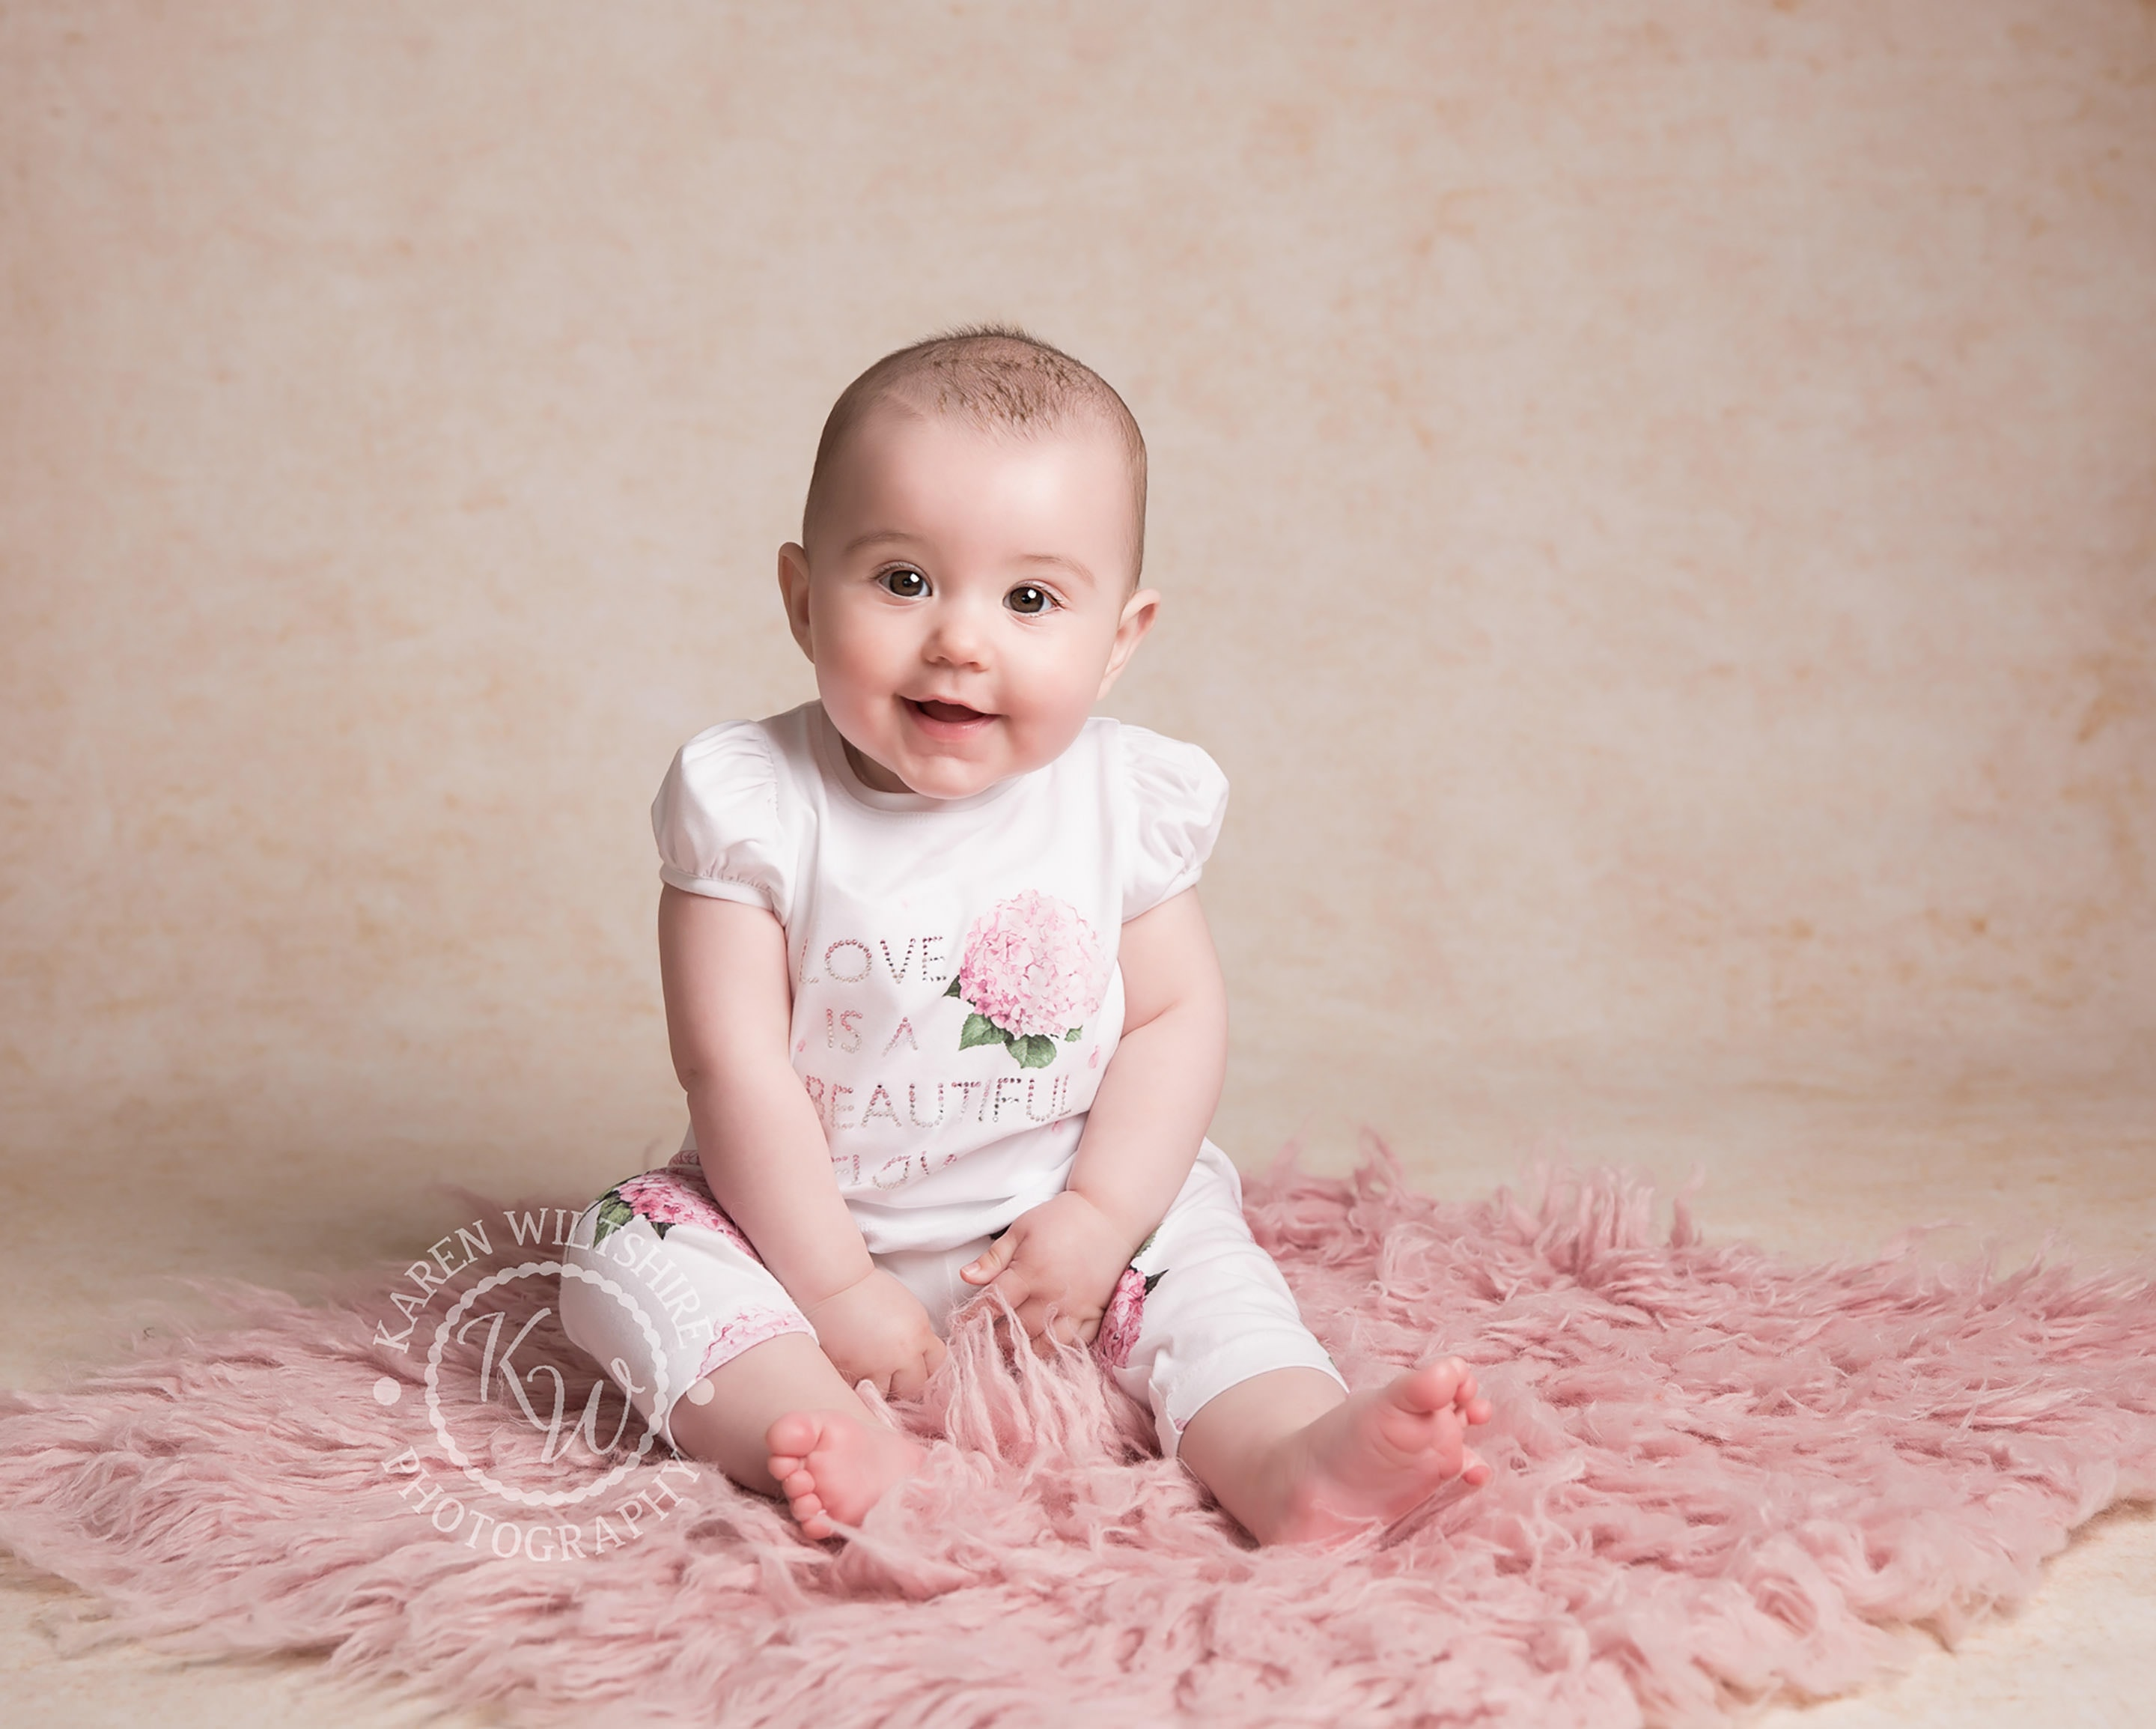 baby photographer Dorset, girl sitting on pink rug and smiling